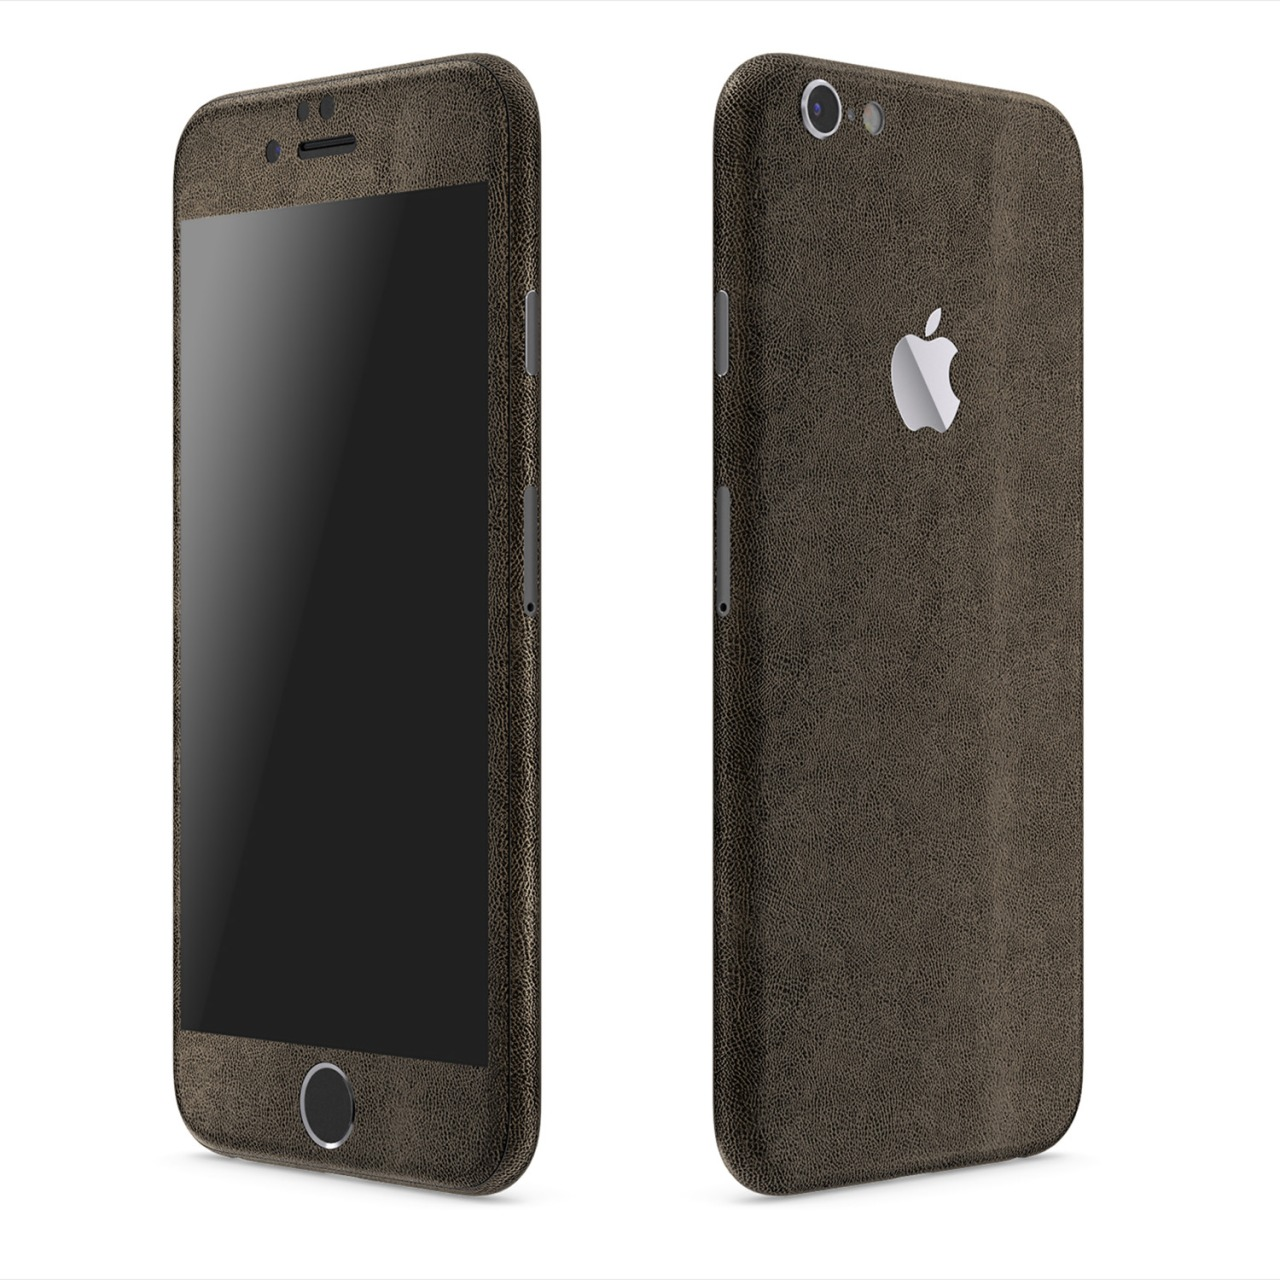 Love the look: Brown Leather Series Slickwrap for iPhone 6 and 6 plus